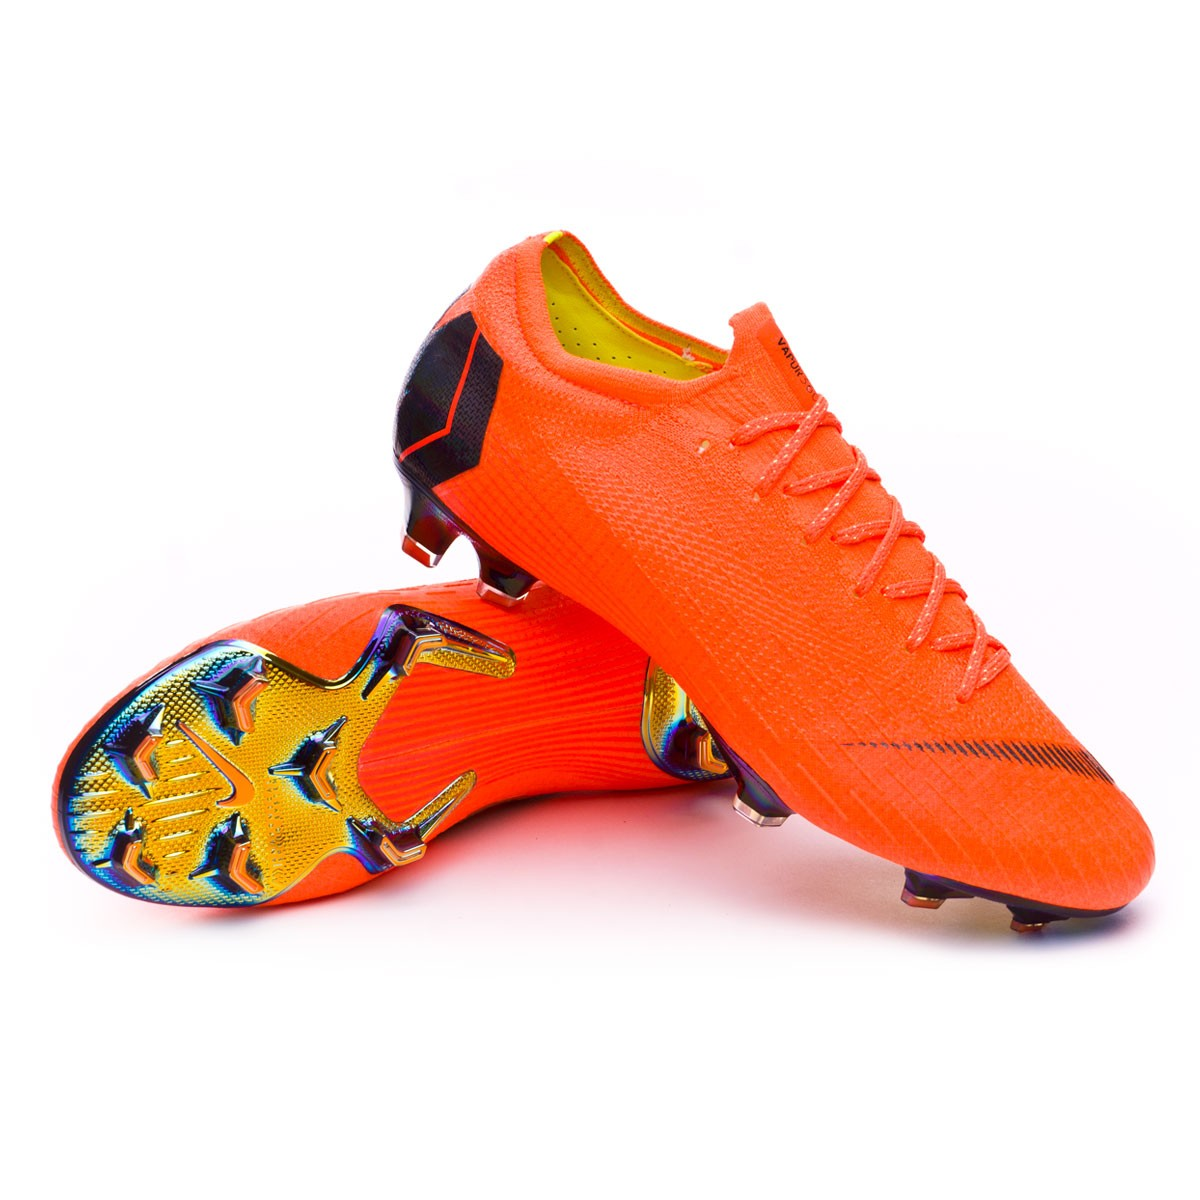 cb700f54a Football Boots Nike Mercurial Vapor XII Elite FG Total orange-Black ...